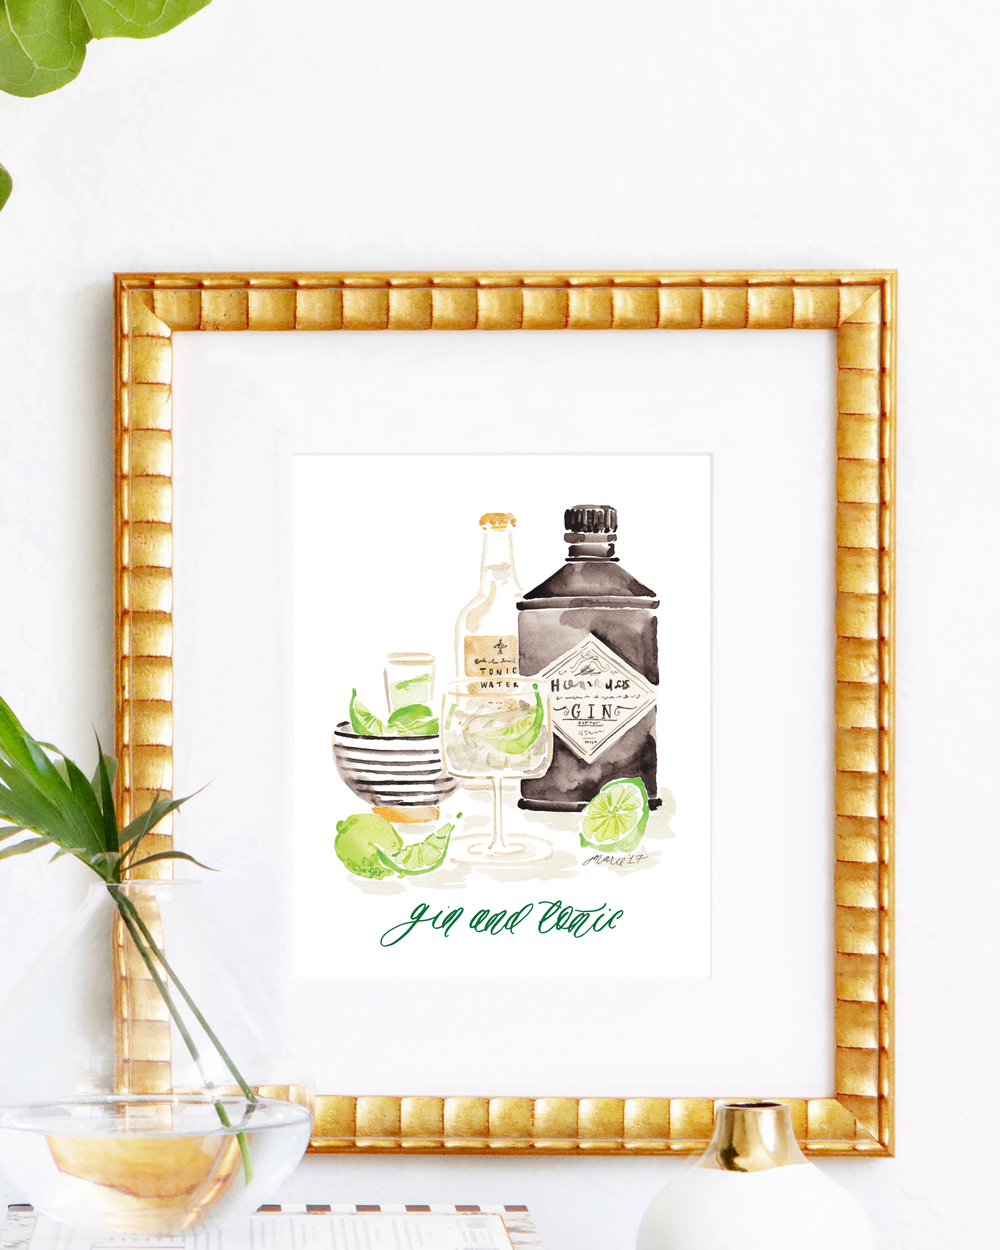 Classic Gin and Tonic cocktail recipe | Mint Julep watercolor art print by Simply Jessica Marie | SC Stockshop